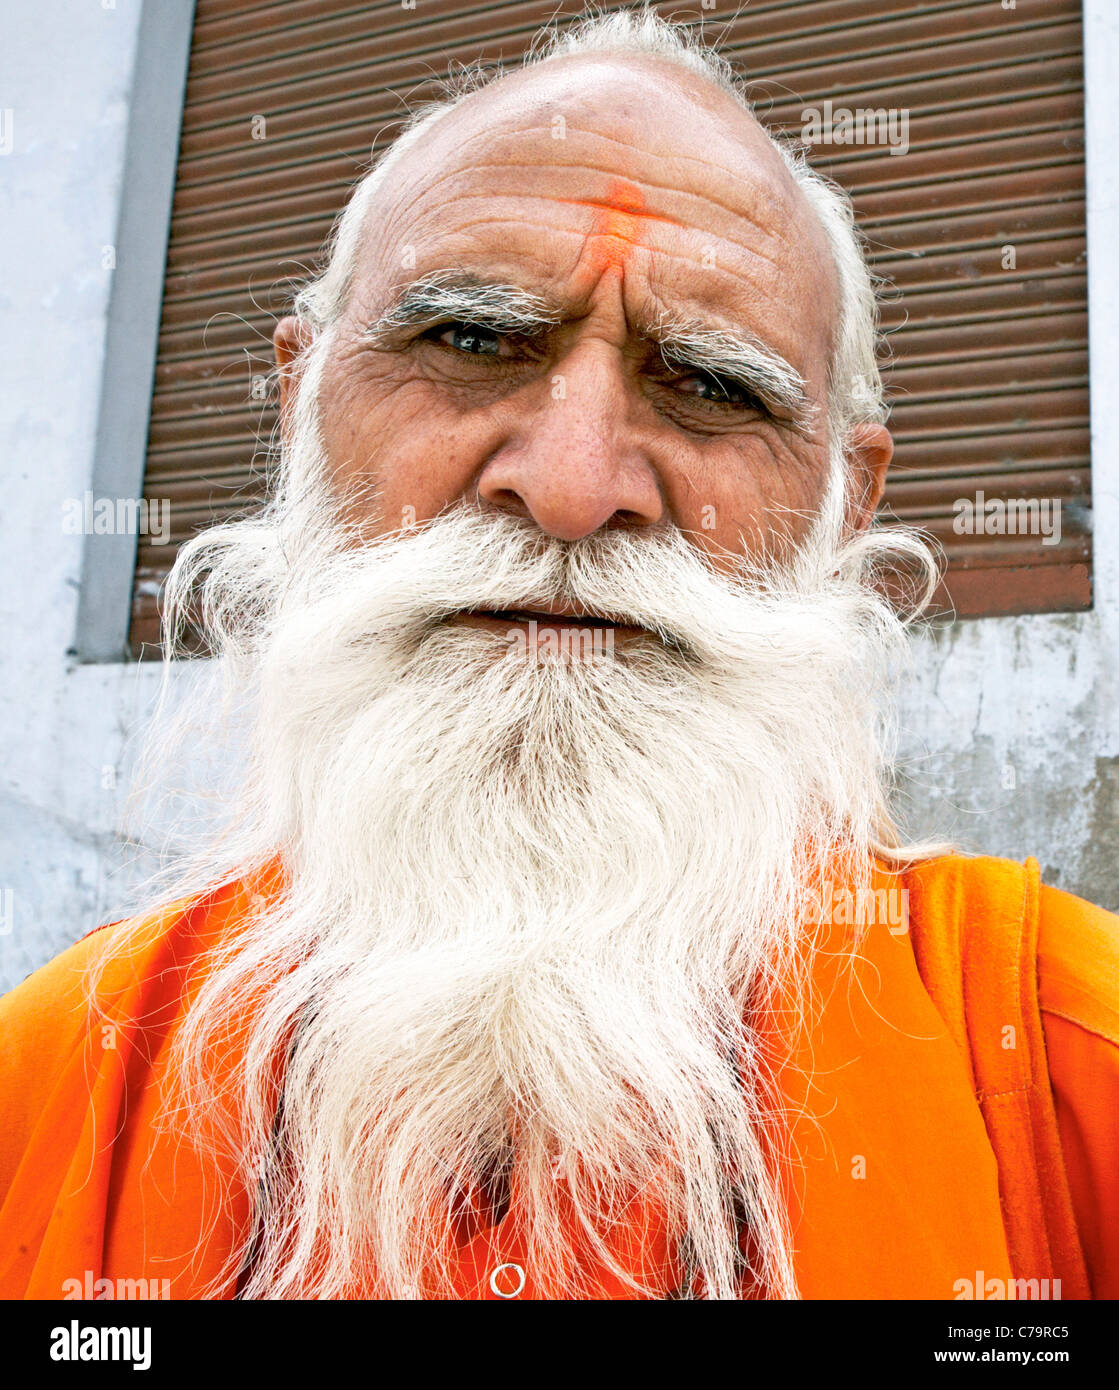 Indian Sadhu At the Holi Festival Mathura India - Stock Image